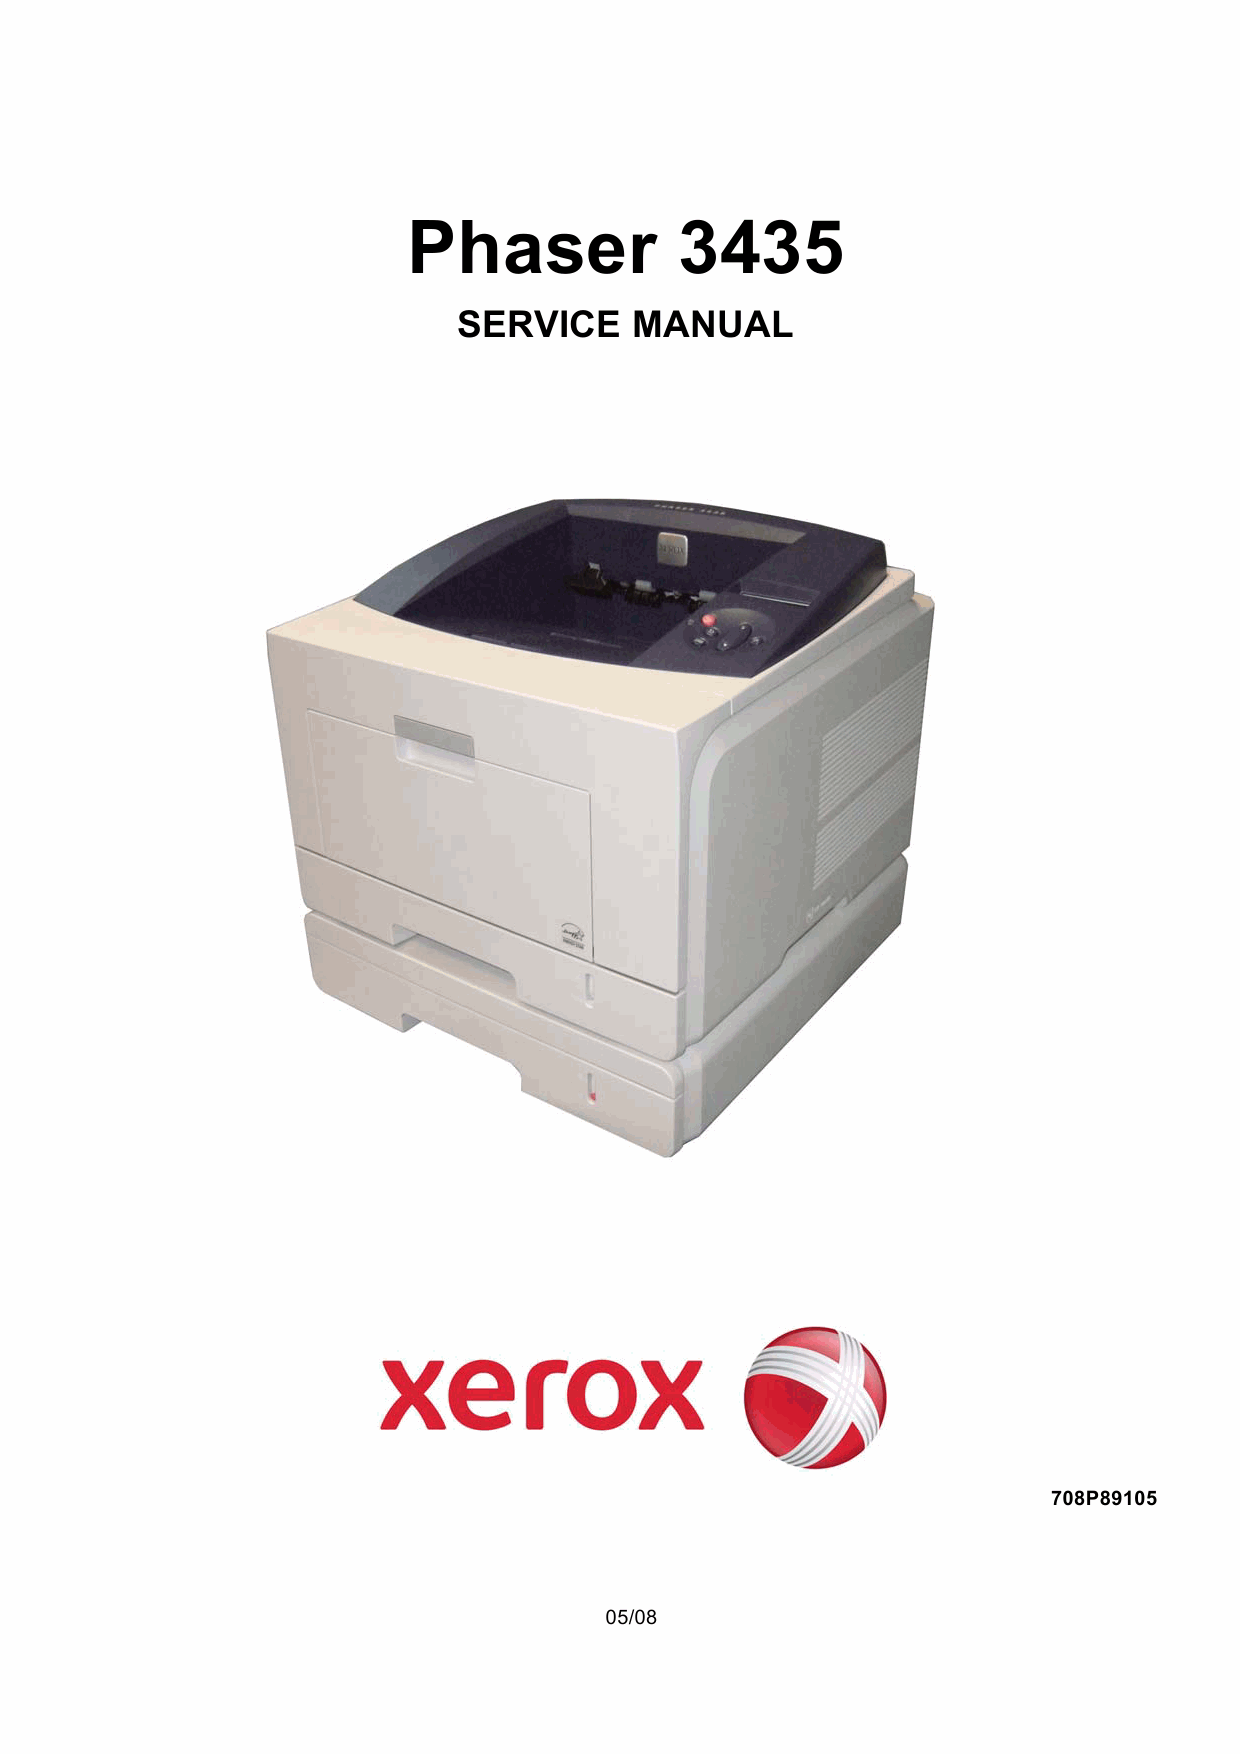 Xerox Phaser 3435 Parts List and Service Manual-1